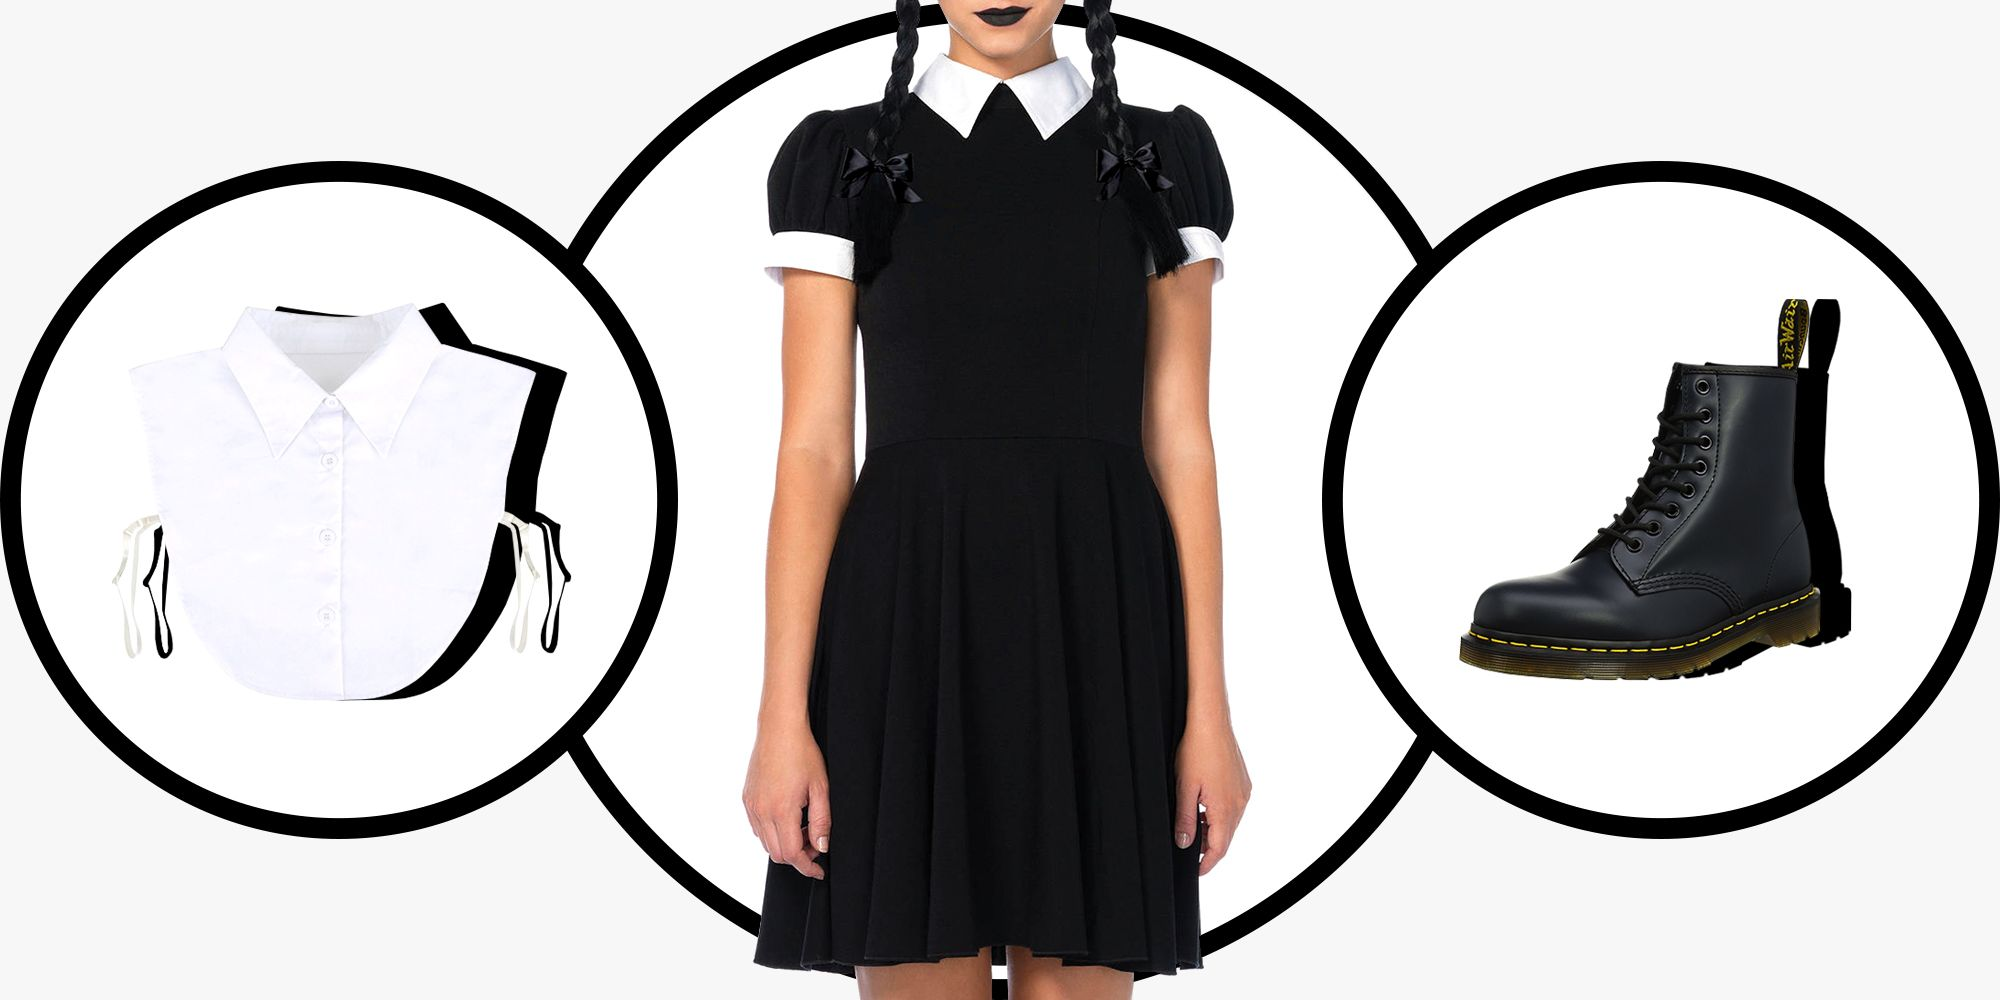 c243cfaa40 14 Best Wednesday Addams Costume Ideas for 2018 - Wednesday Addams Dresses    Outfits